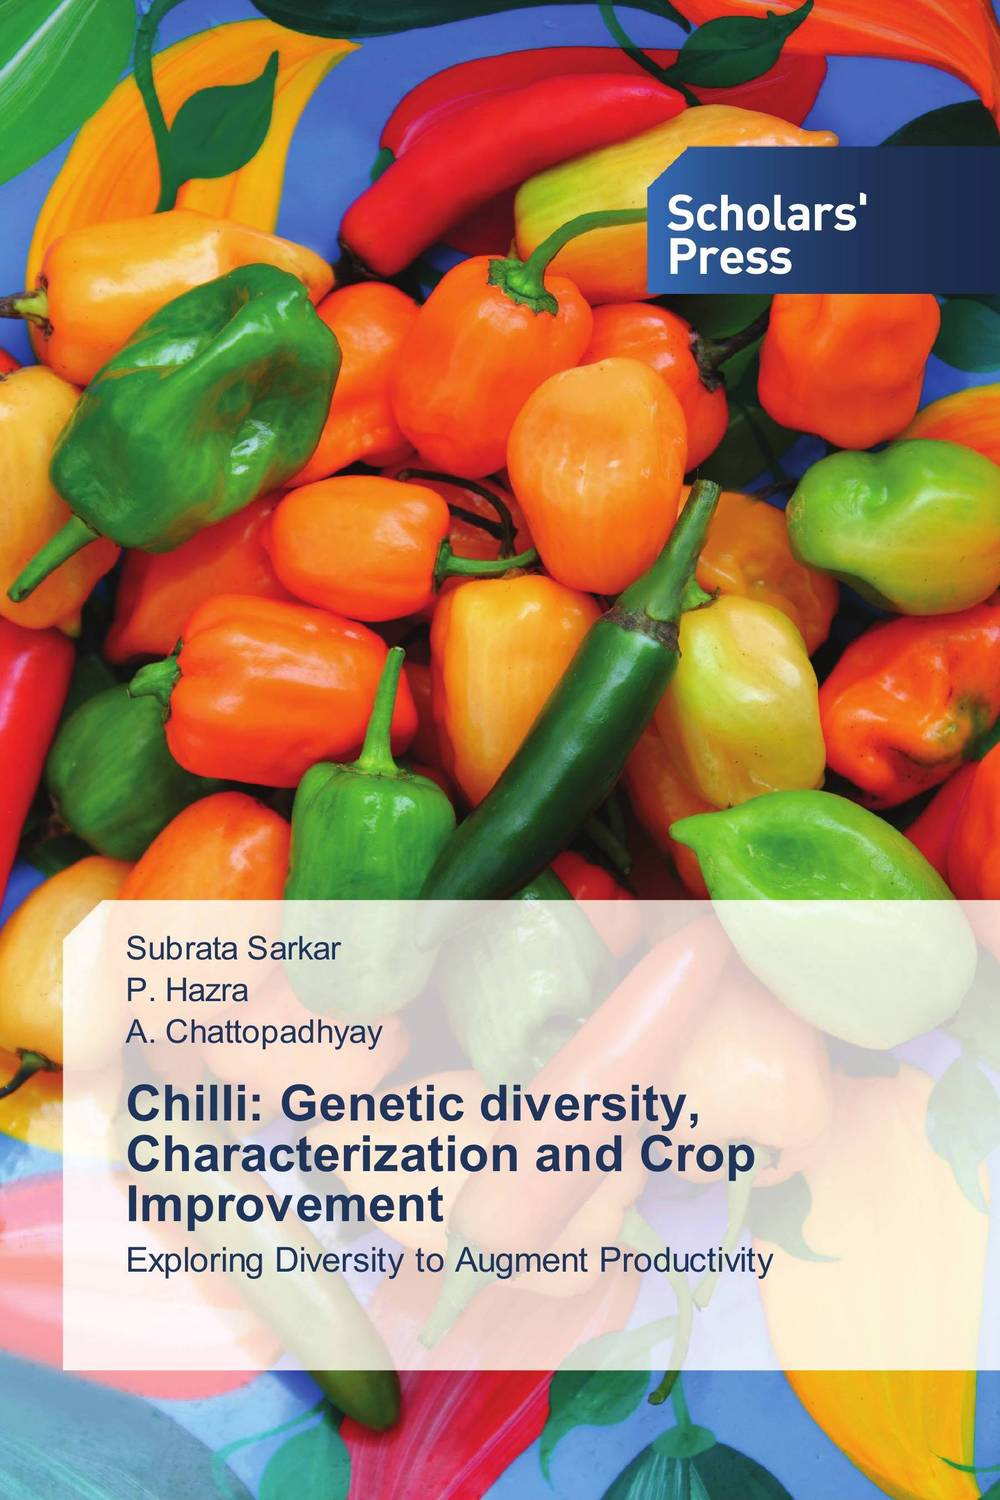 Chilli: Genetic diversity, Characterization and Crop Improvement dna fingerprinting of trees and genetic diversity of syzygium cumini